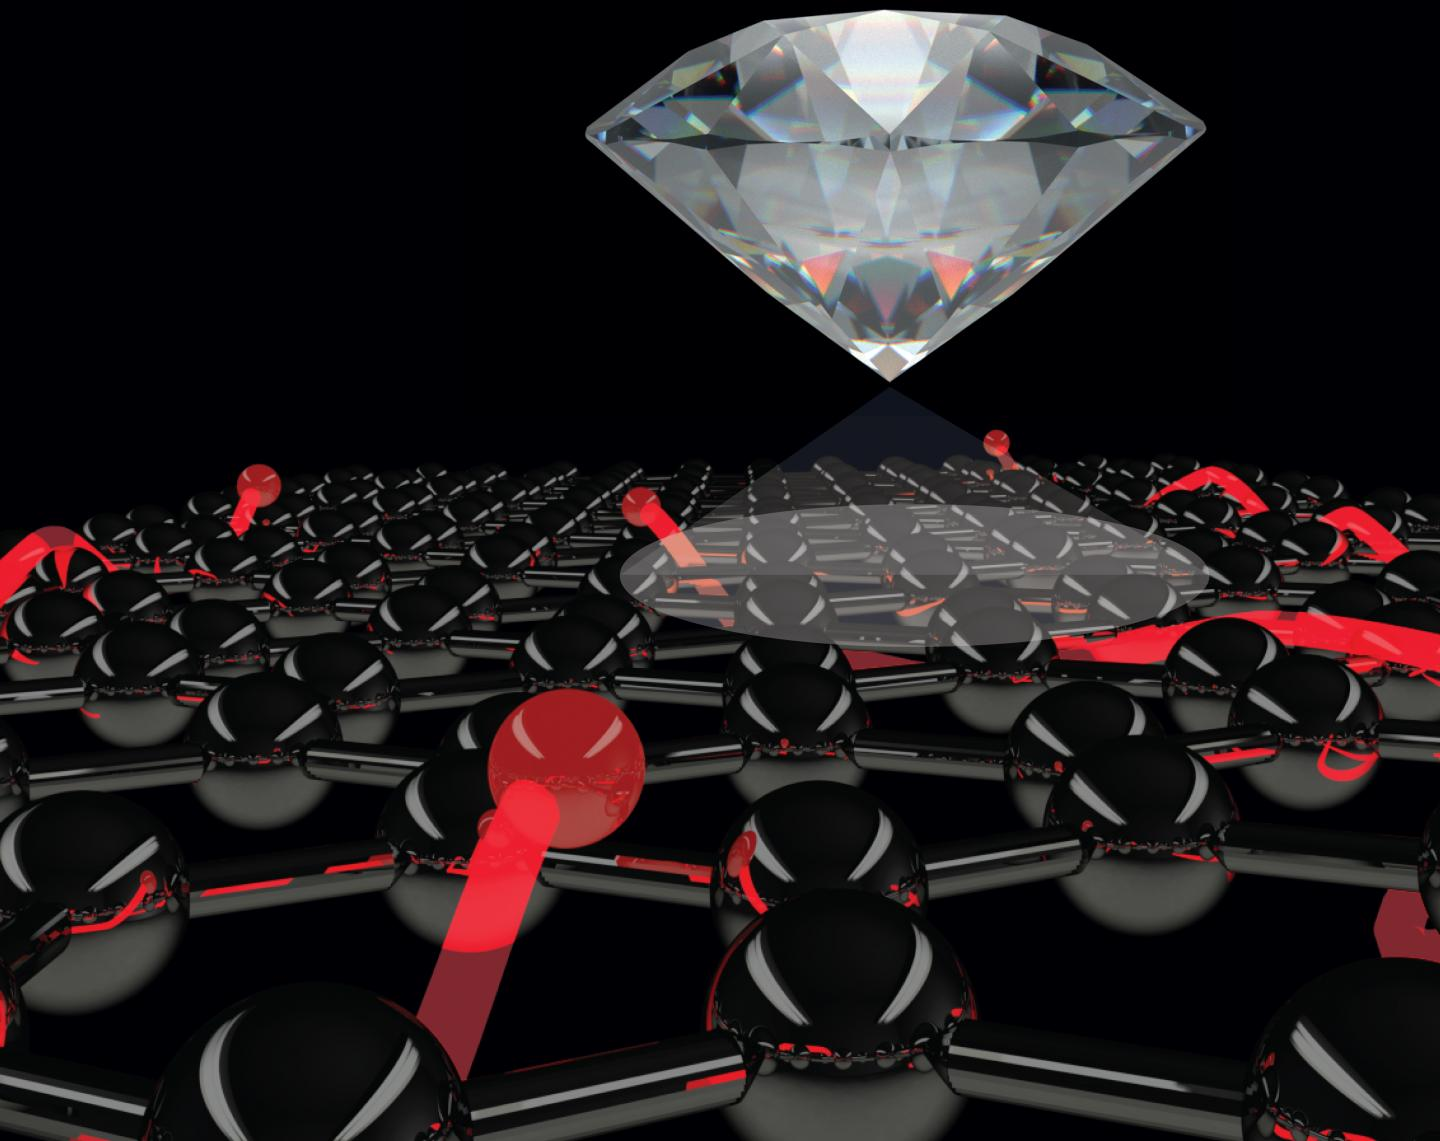 Researchers have shown it's possible to study the magnetic properties of ultrathin materials directly